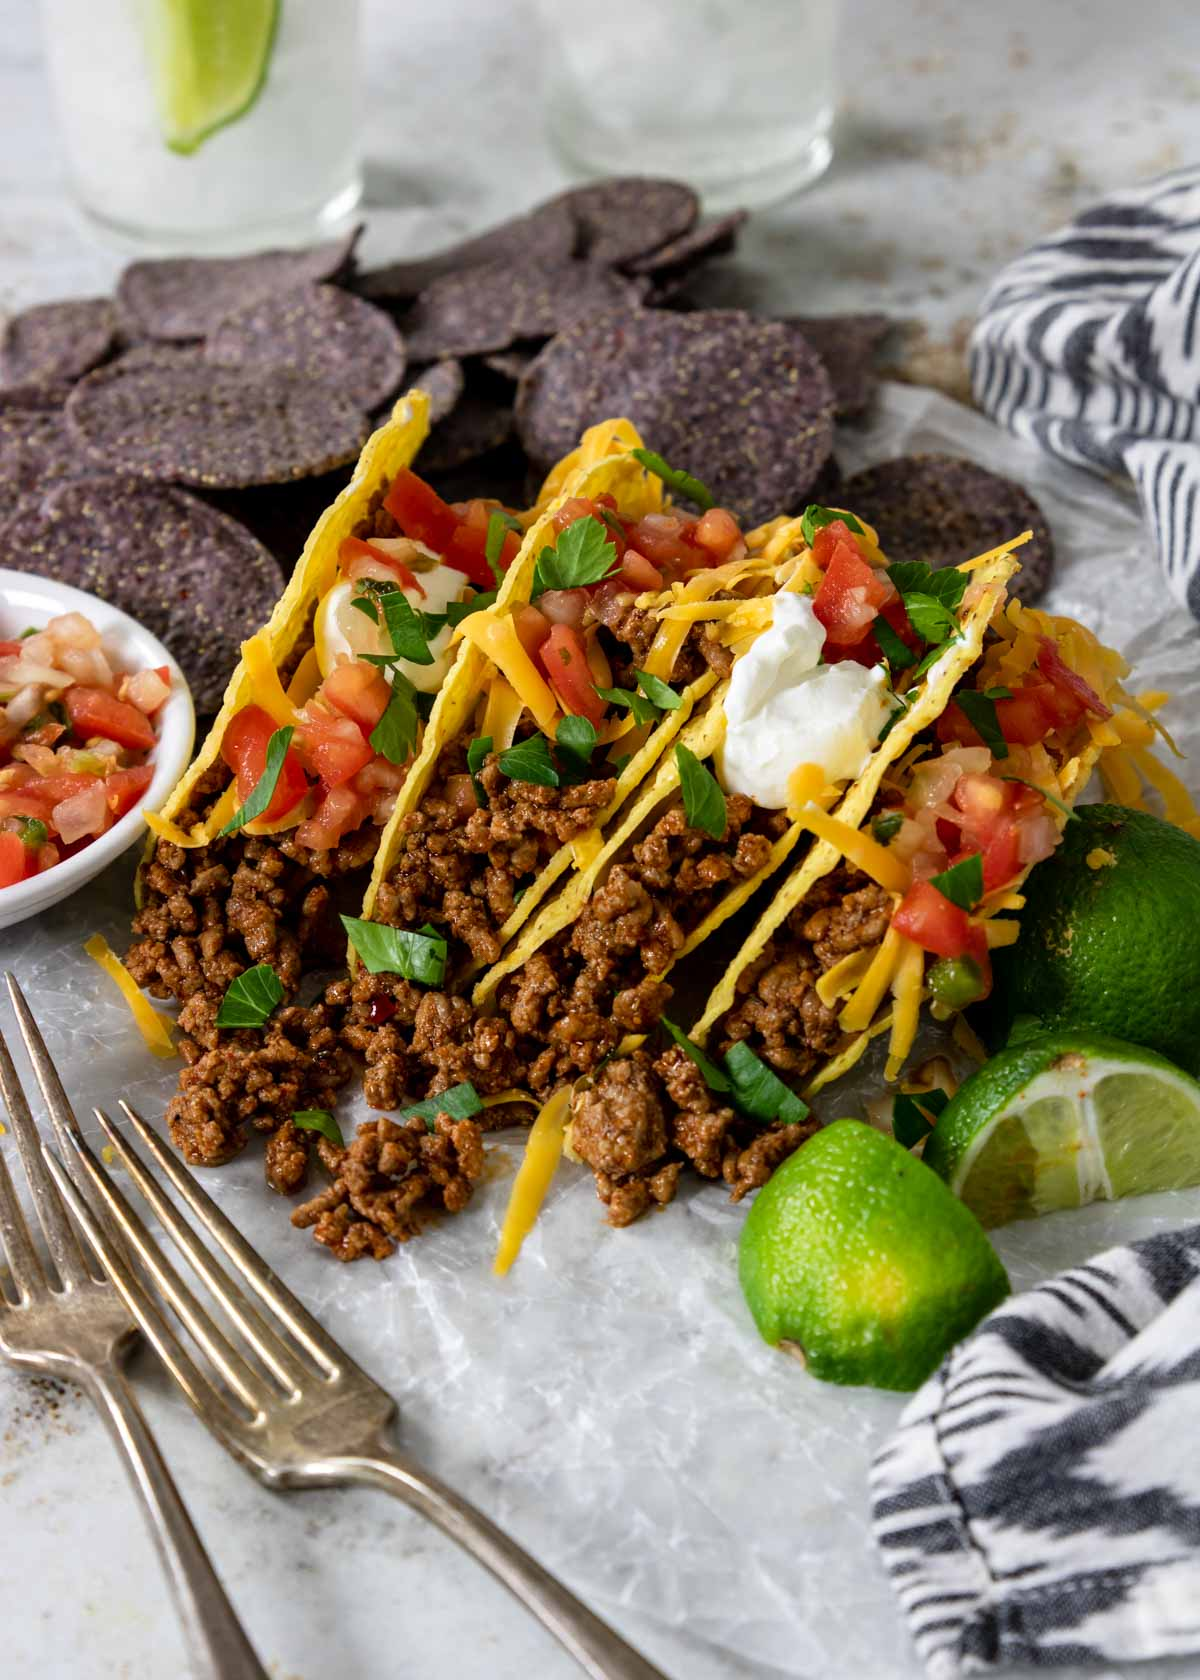 Ground beef tacos in hard shells with toppings